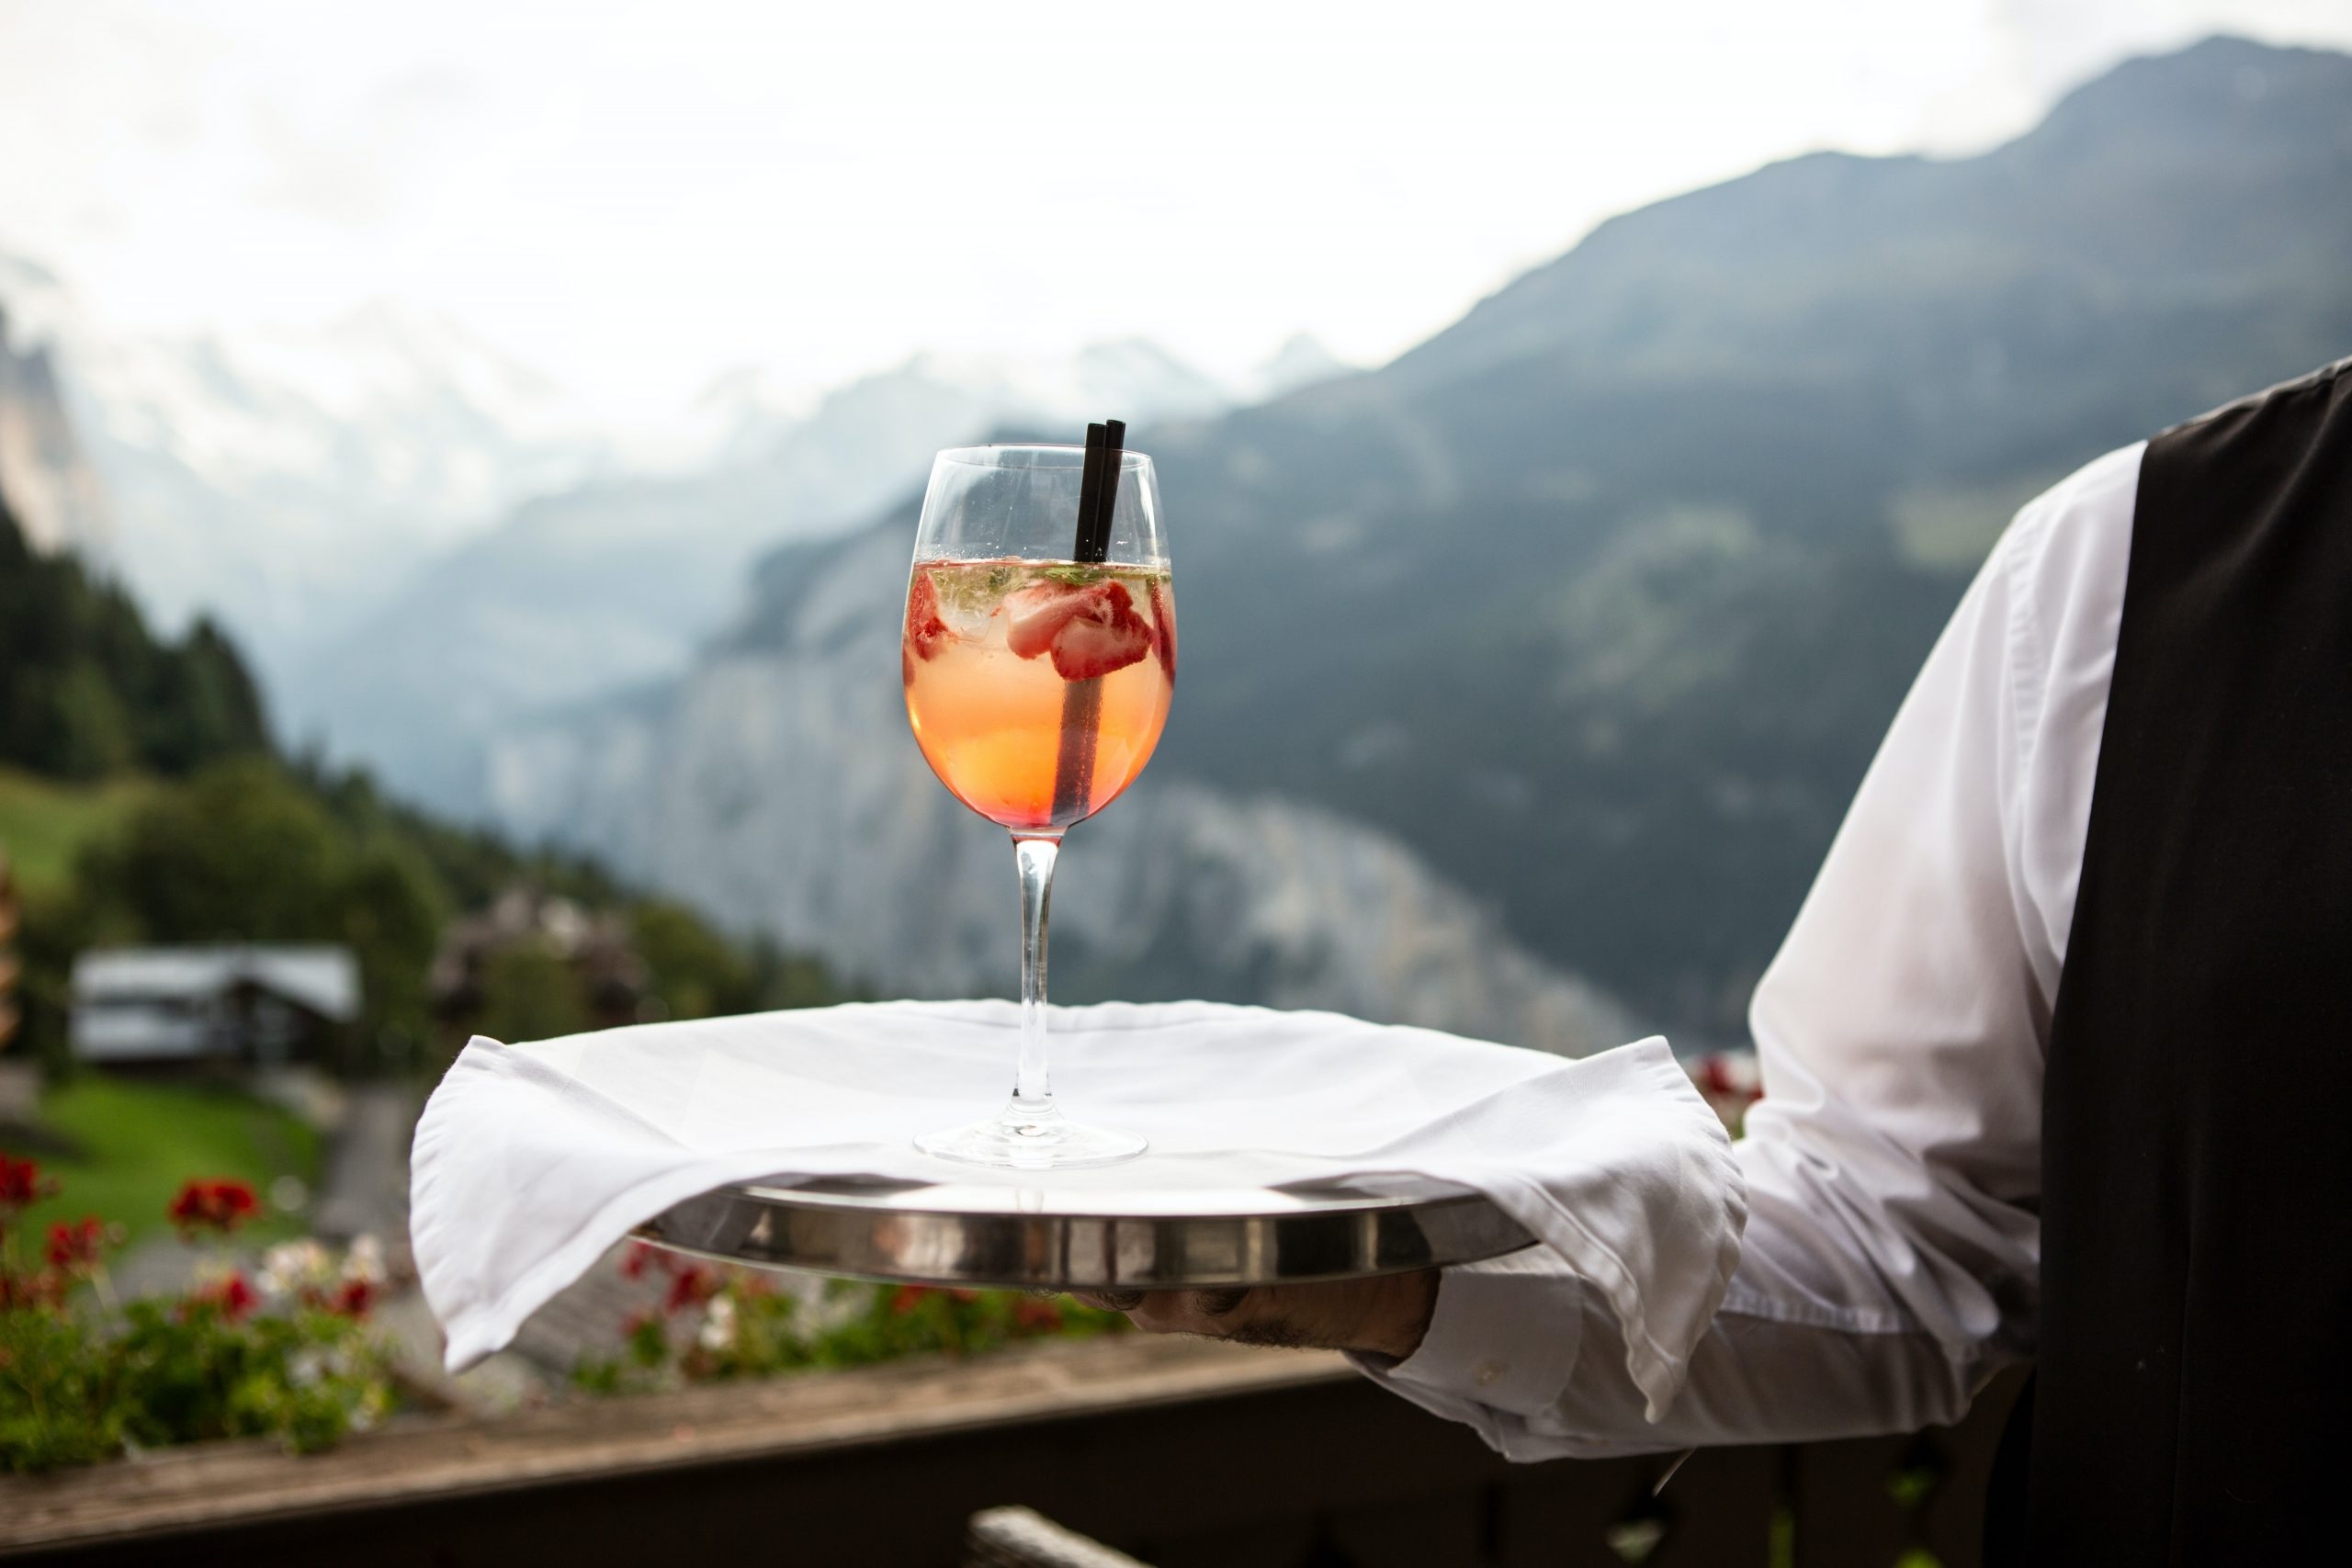 Waiter with a cocktail